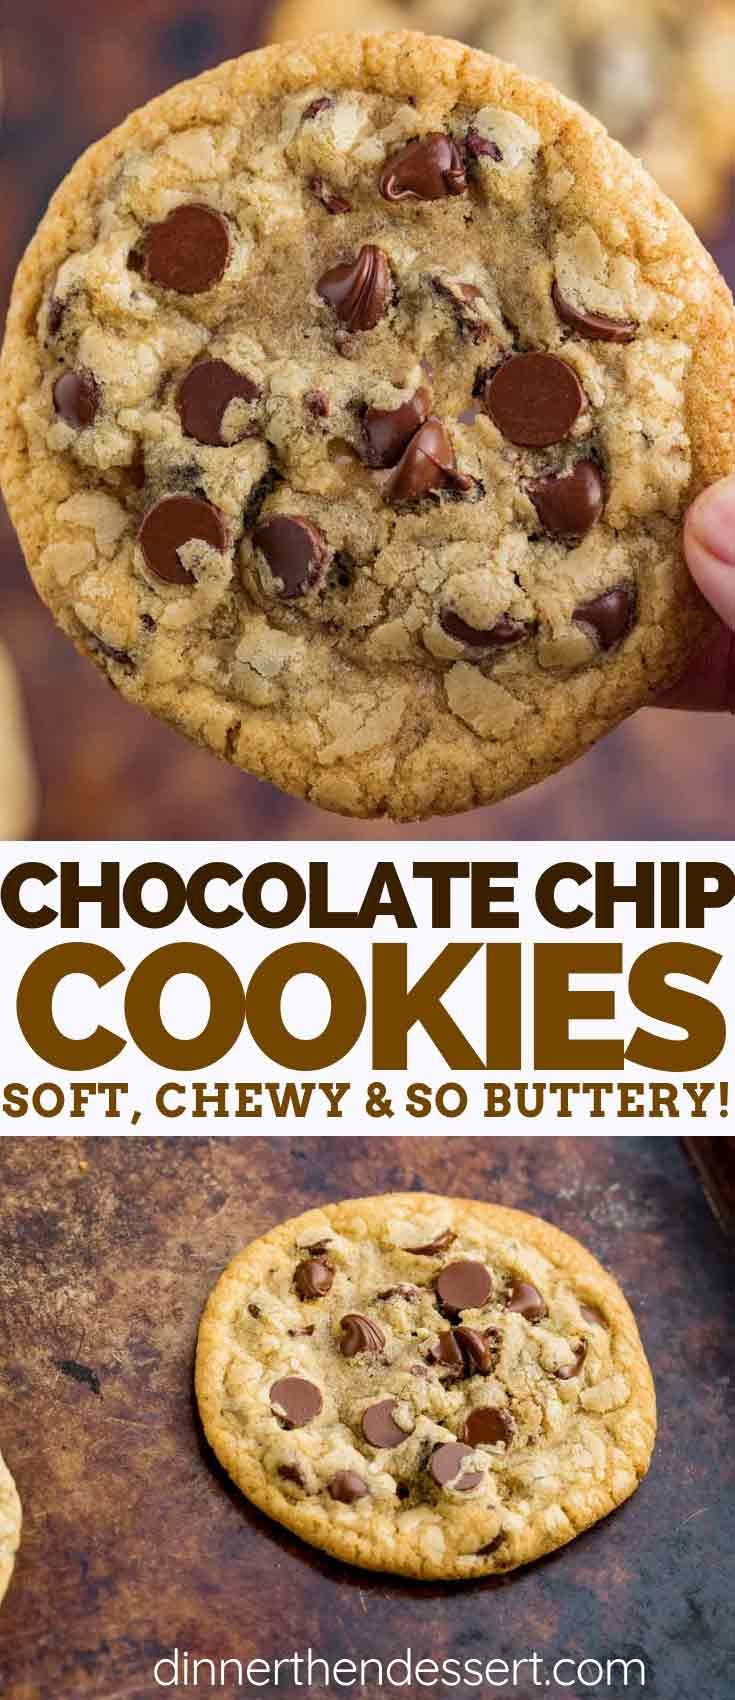 Chocolate Chip Cookies are a CLASSIC recipe that's soft, chewy, and made with on…